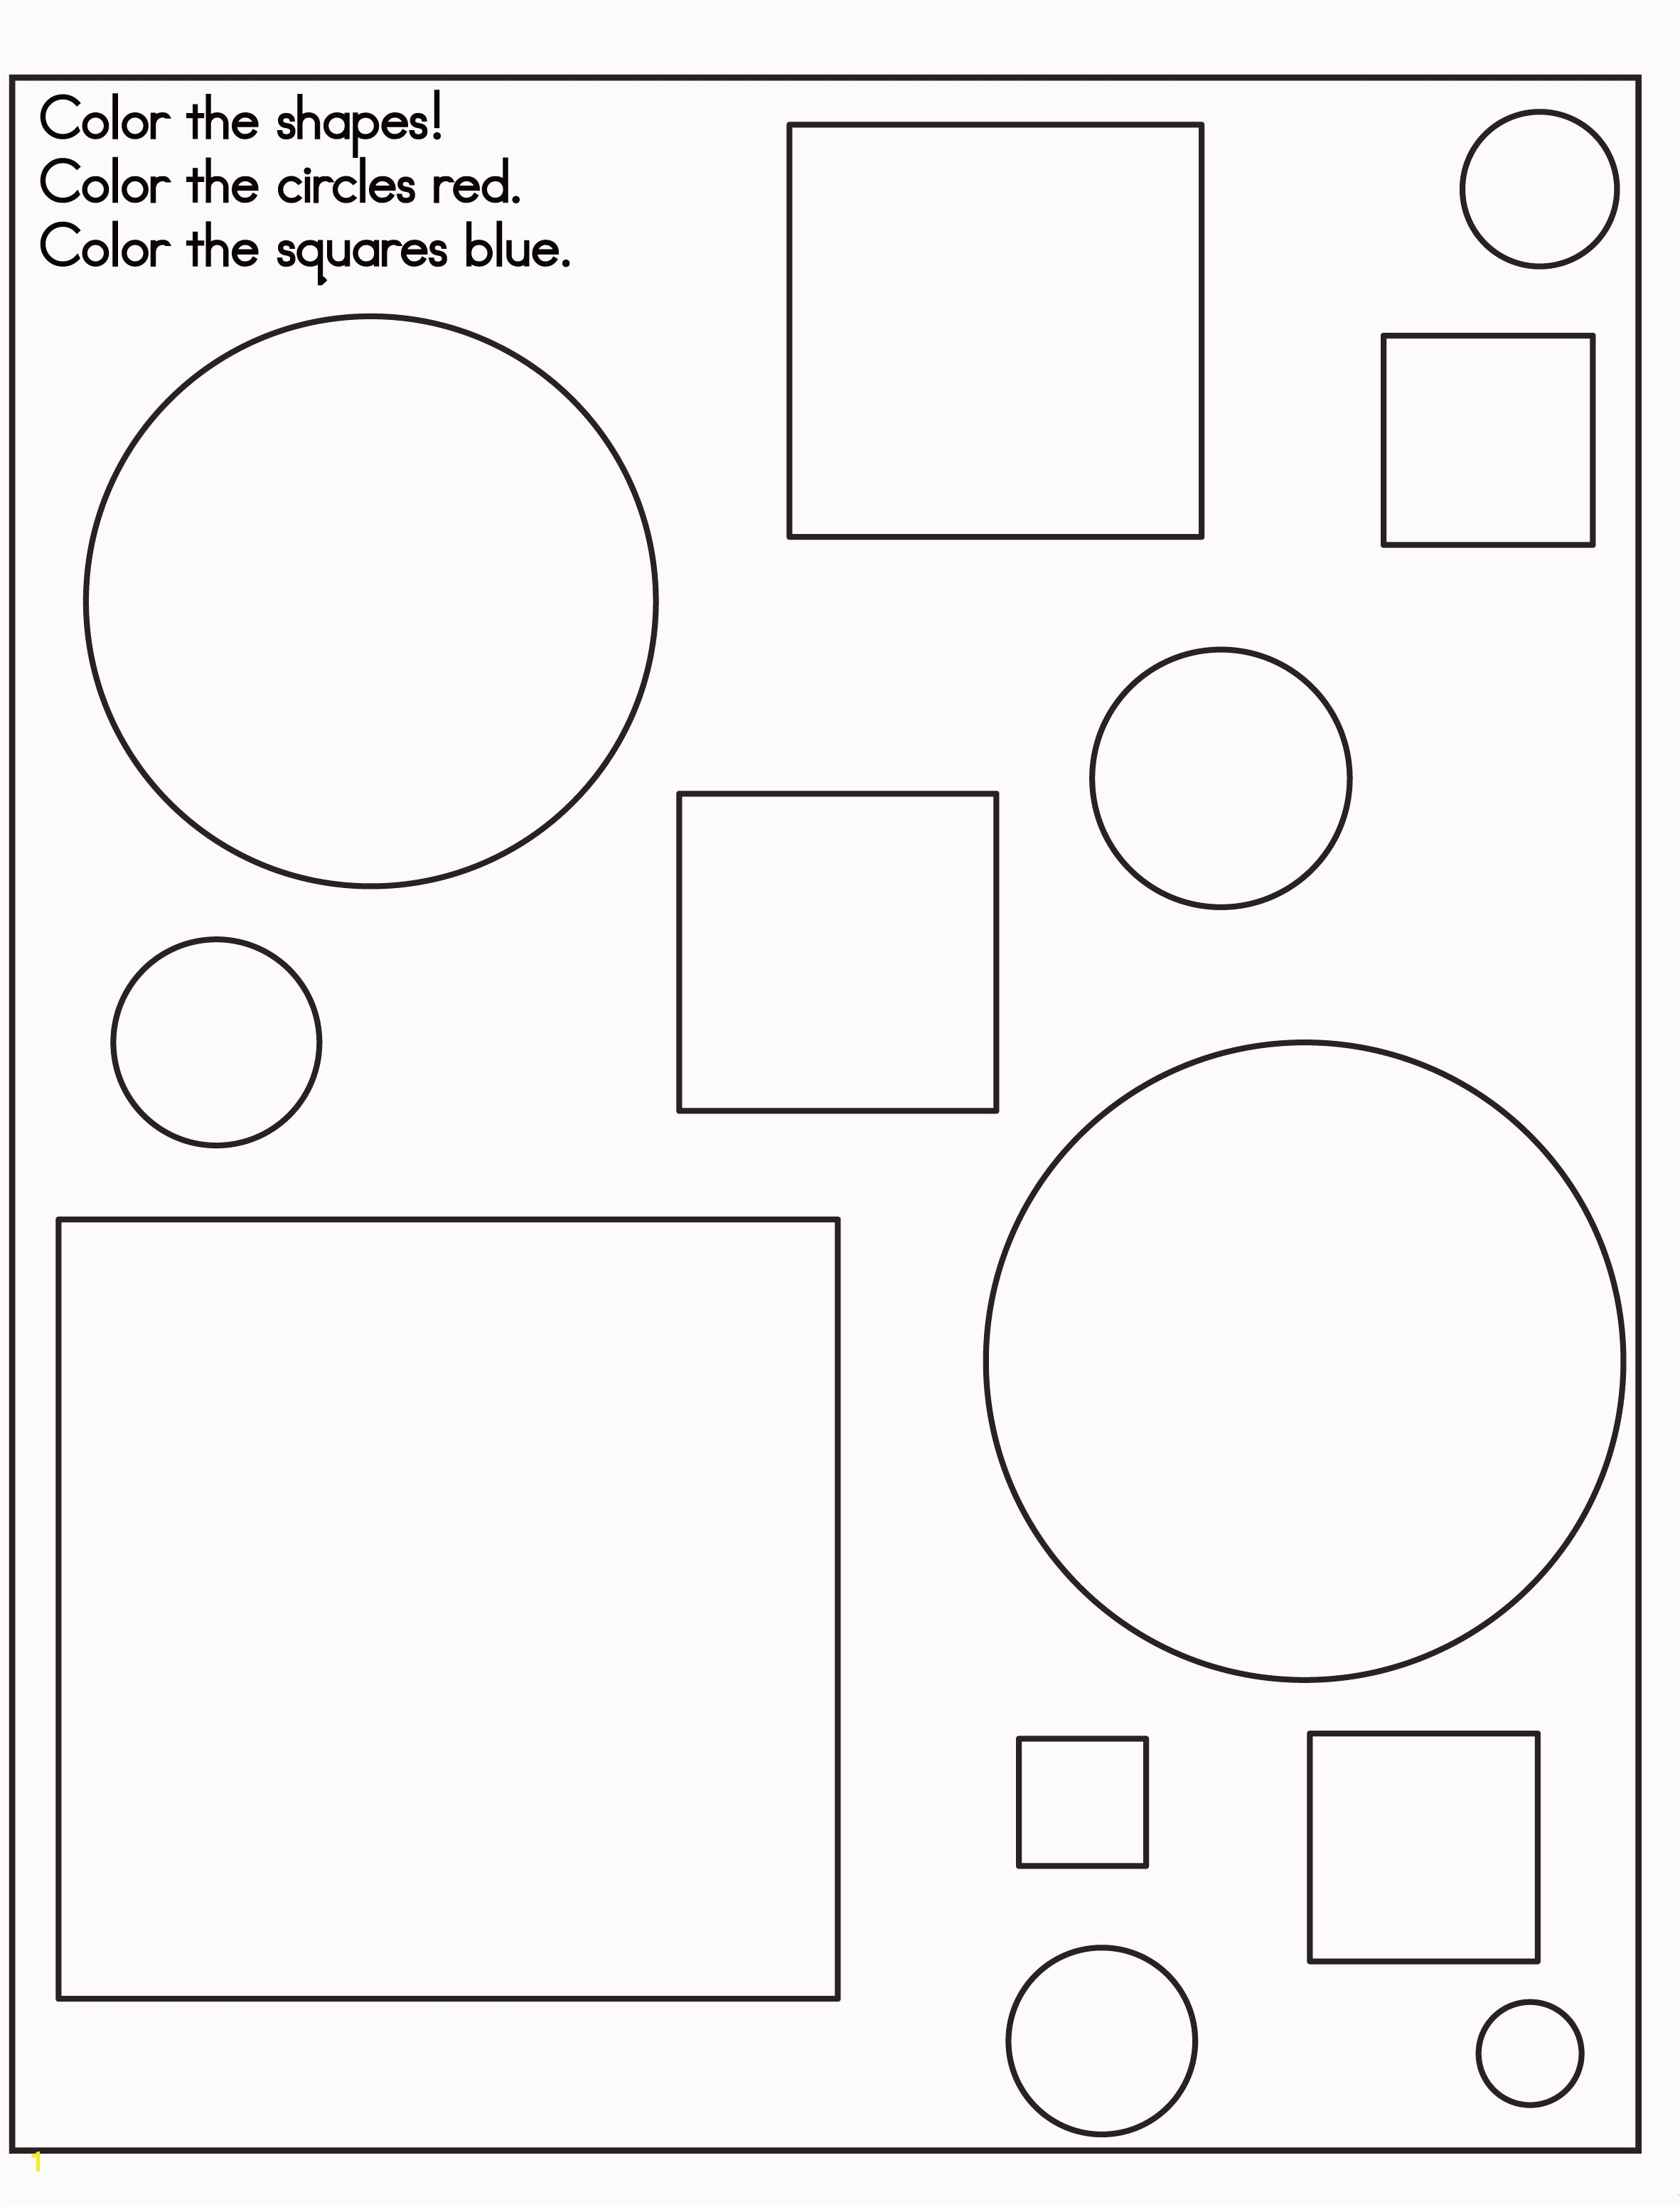 Anointing Of the Sick Coloring Page 30 Best Chalice and Host Coloring Page